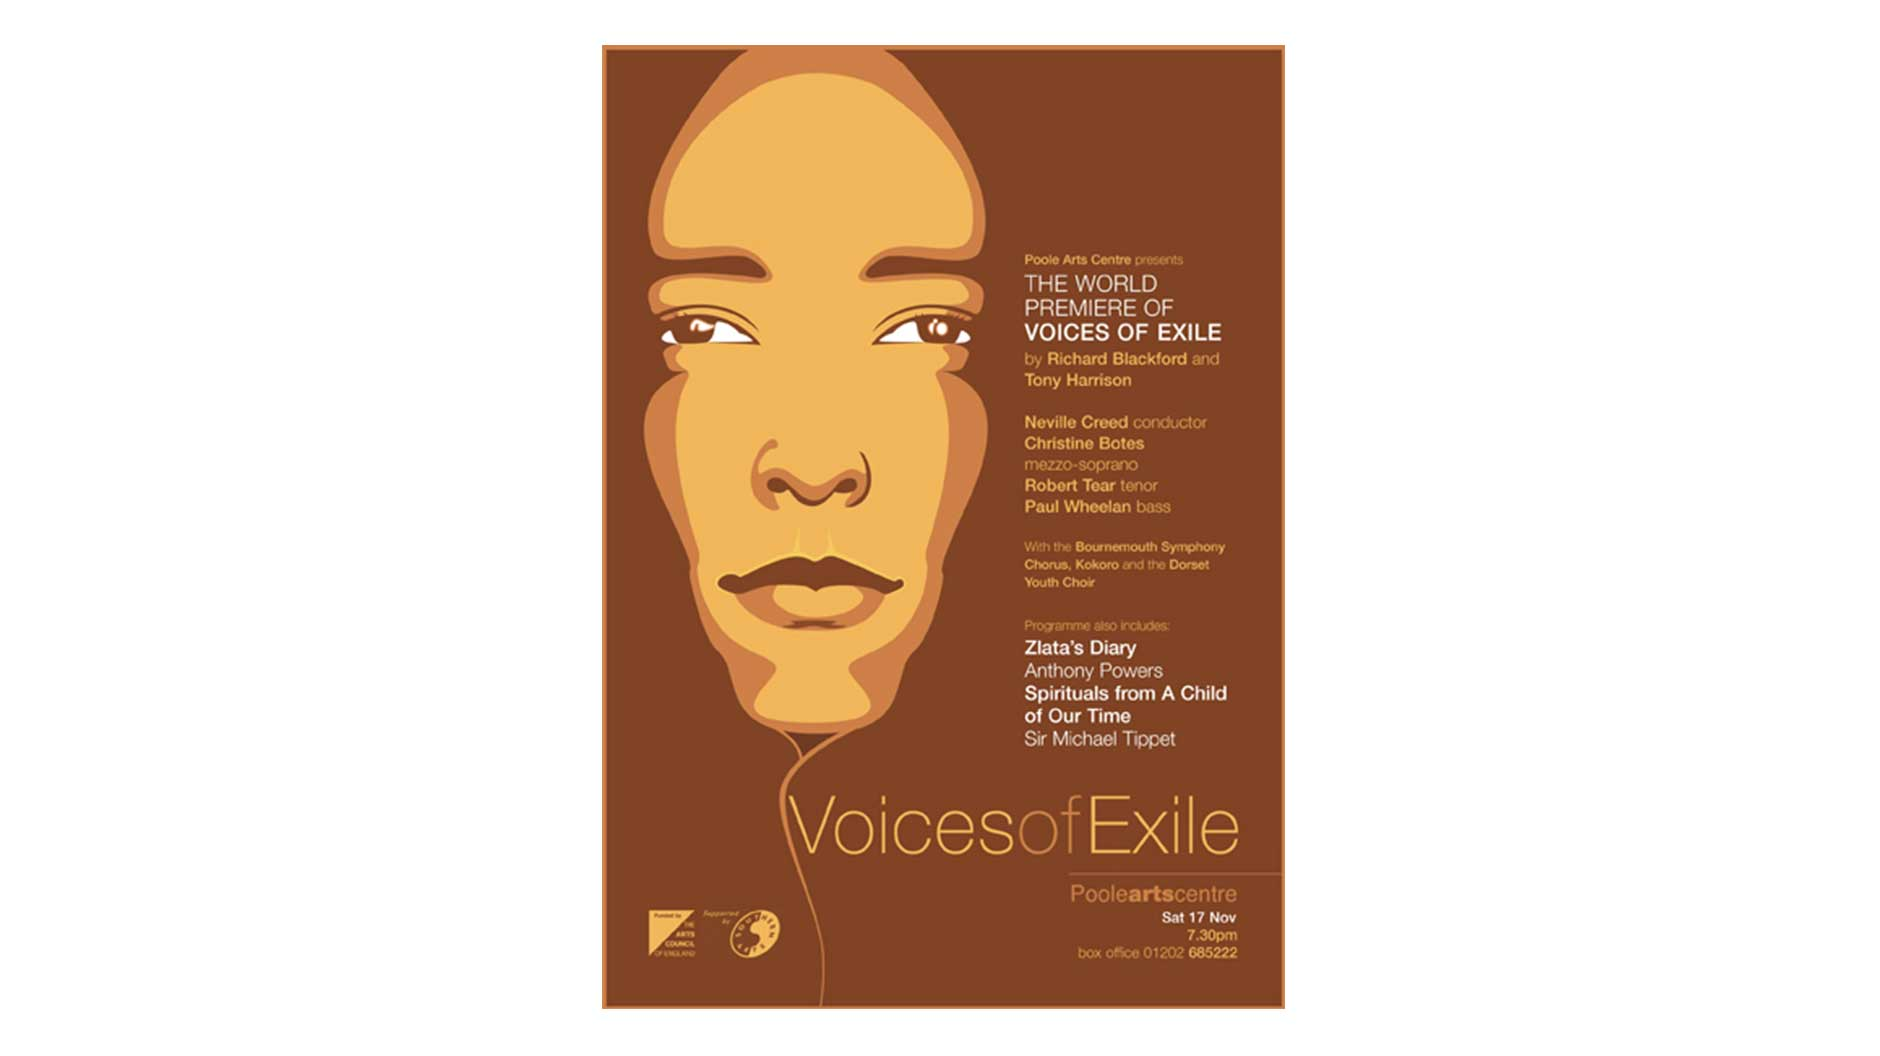 Voices of Exile poster design